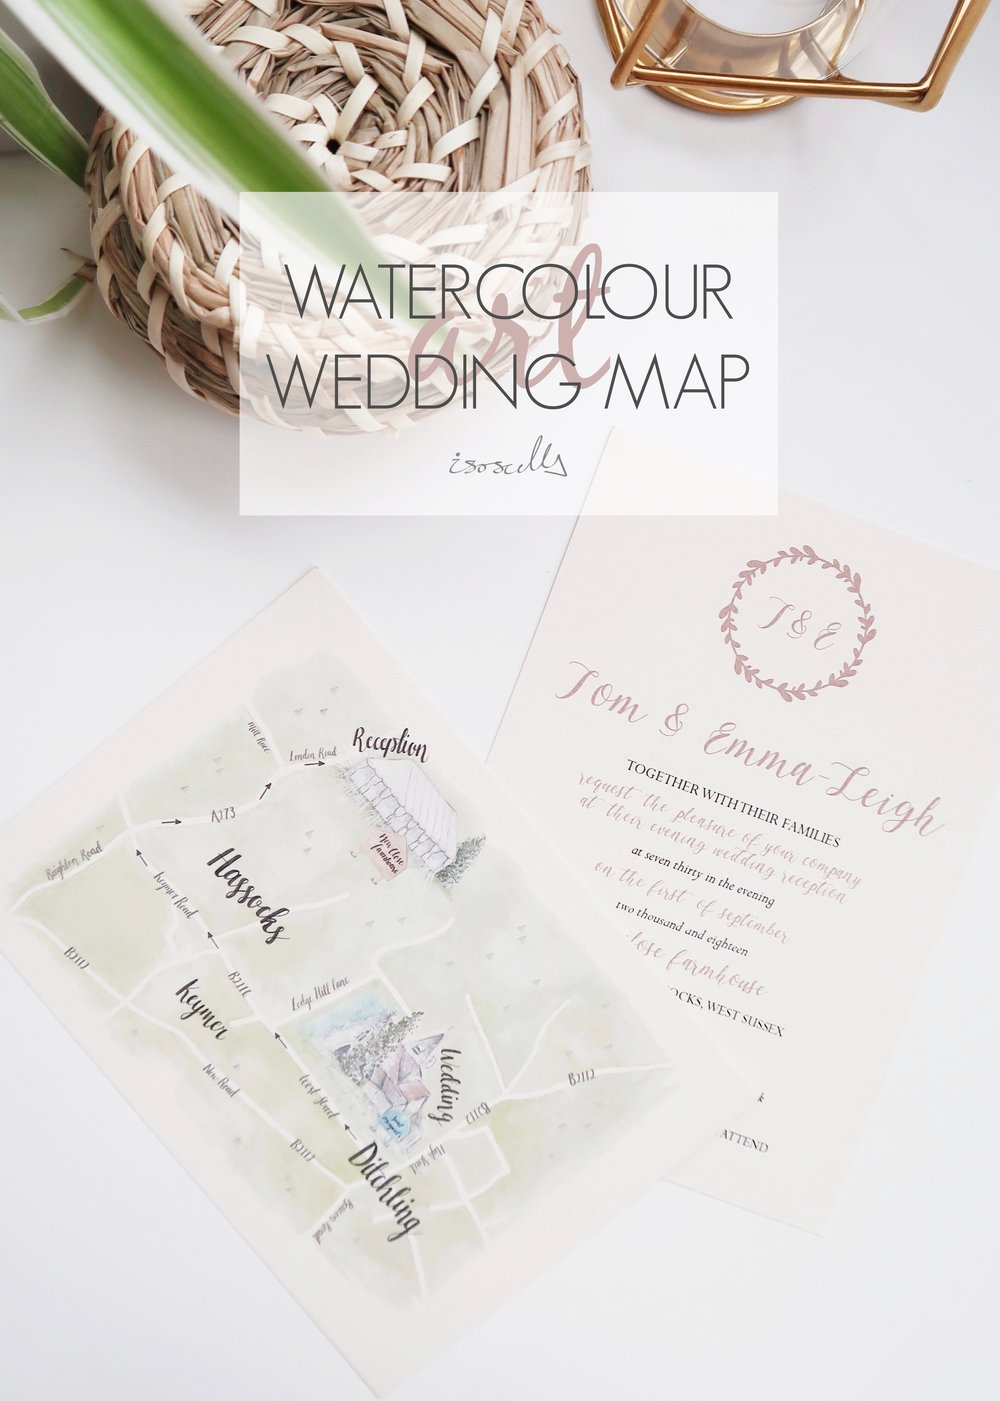 Watercolour Wedding Map by Isoscella